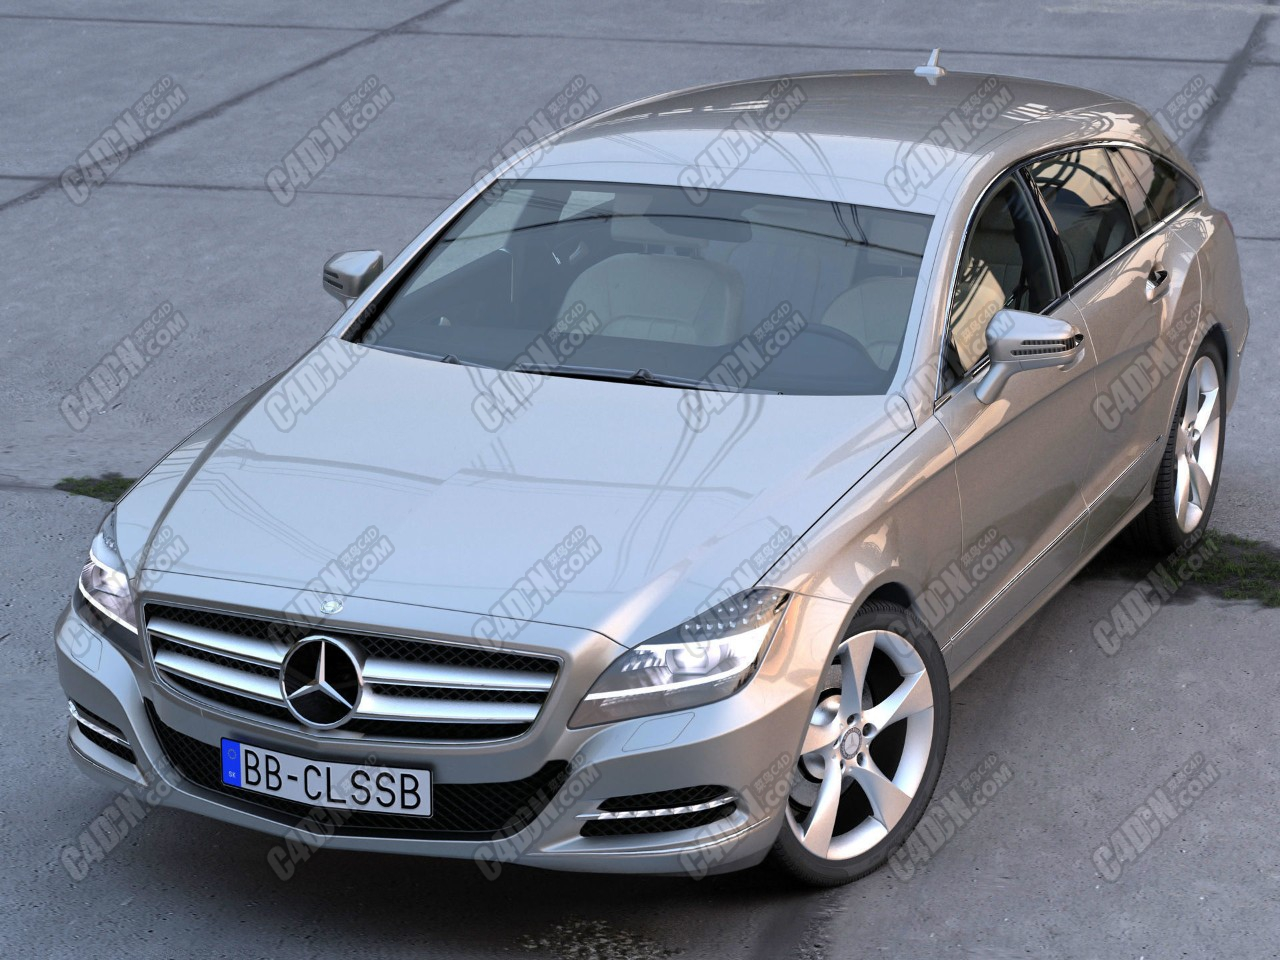 梅赛德斯奔驰CLS豪华汽车C4D模型 Mercedes Benz CLS Shooting Brake 2013